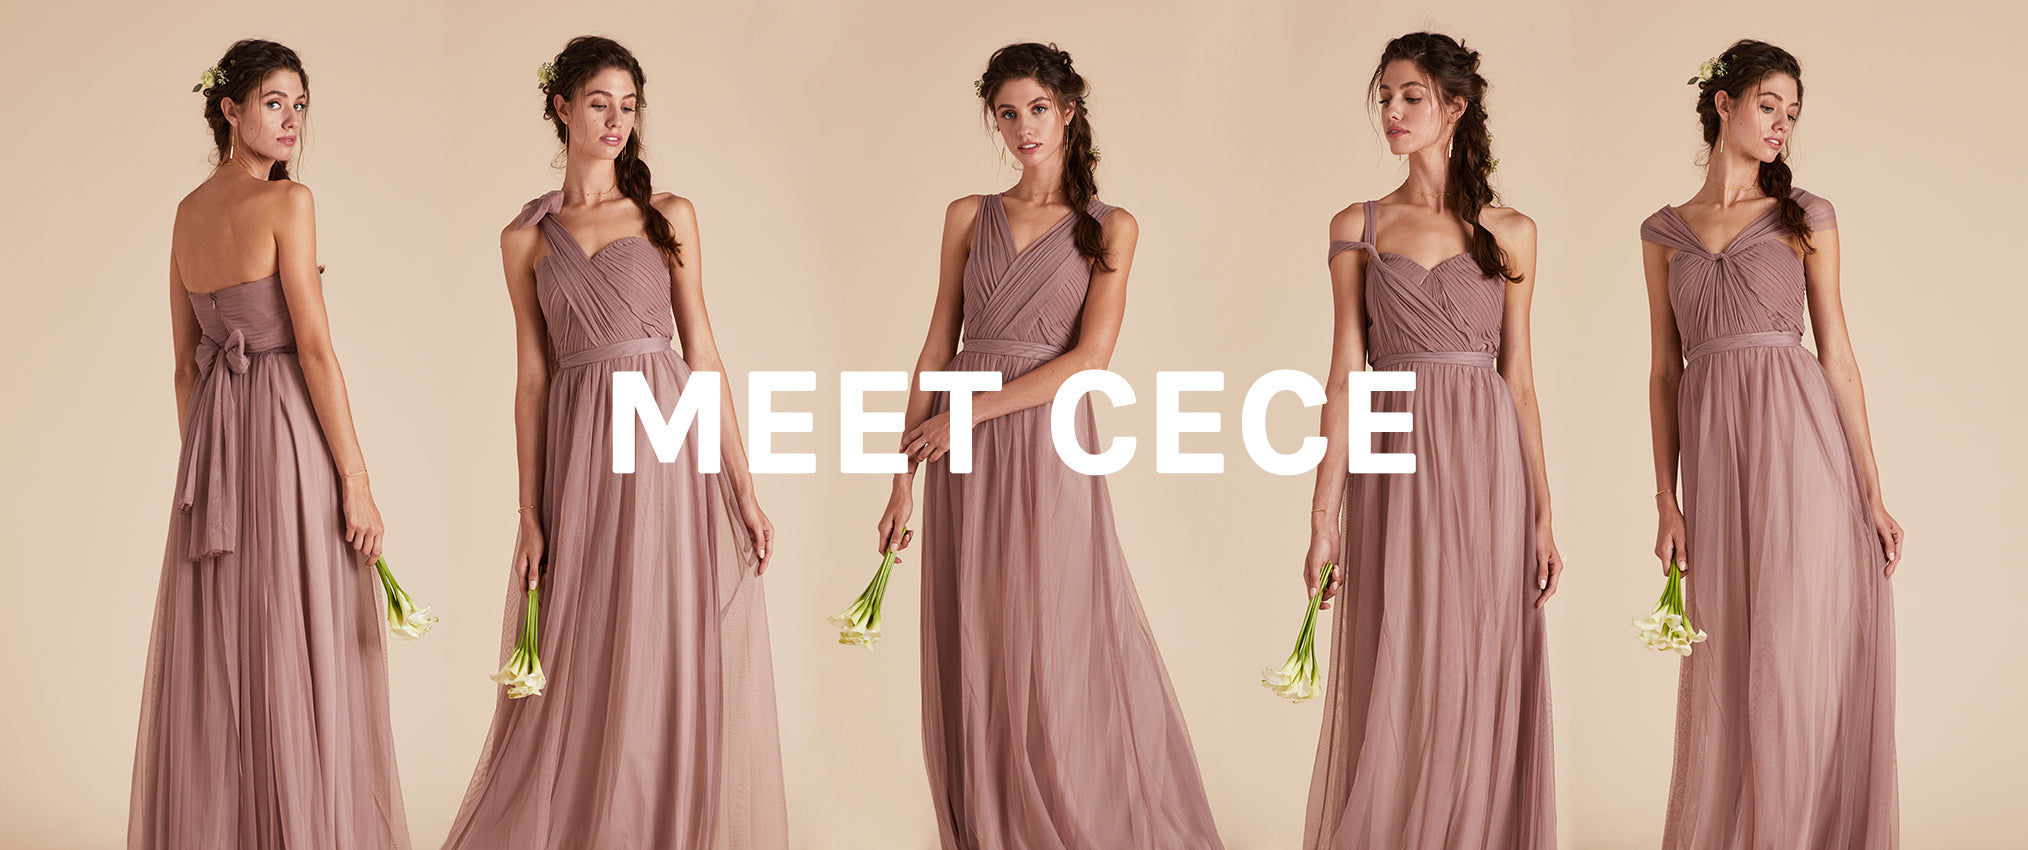 Cece convertible tulle bridesmaid dress birdy grey how to wear birdy greys cece convertible tulle bridesmaid dress ombrellifo Choice Image